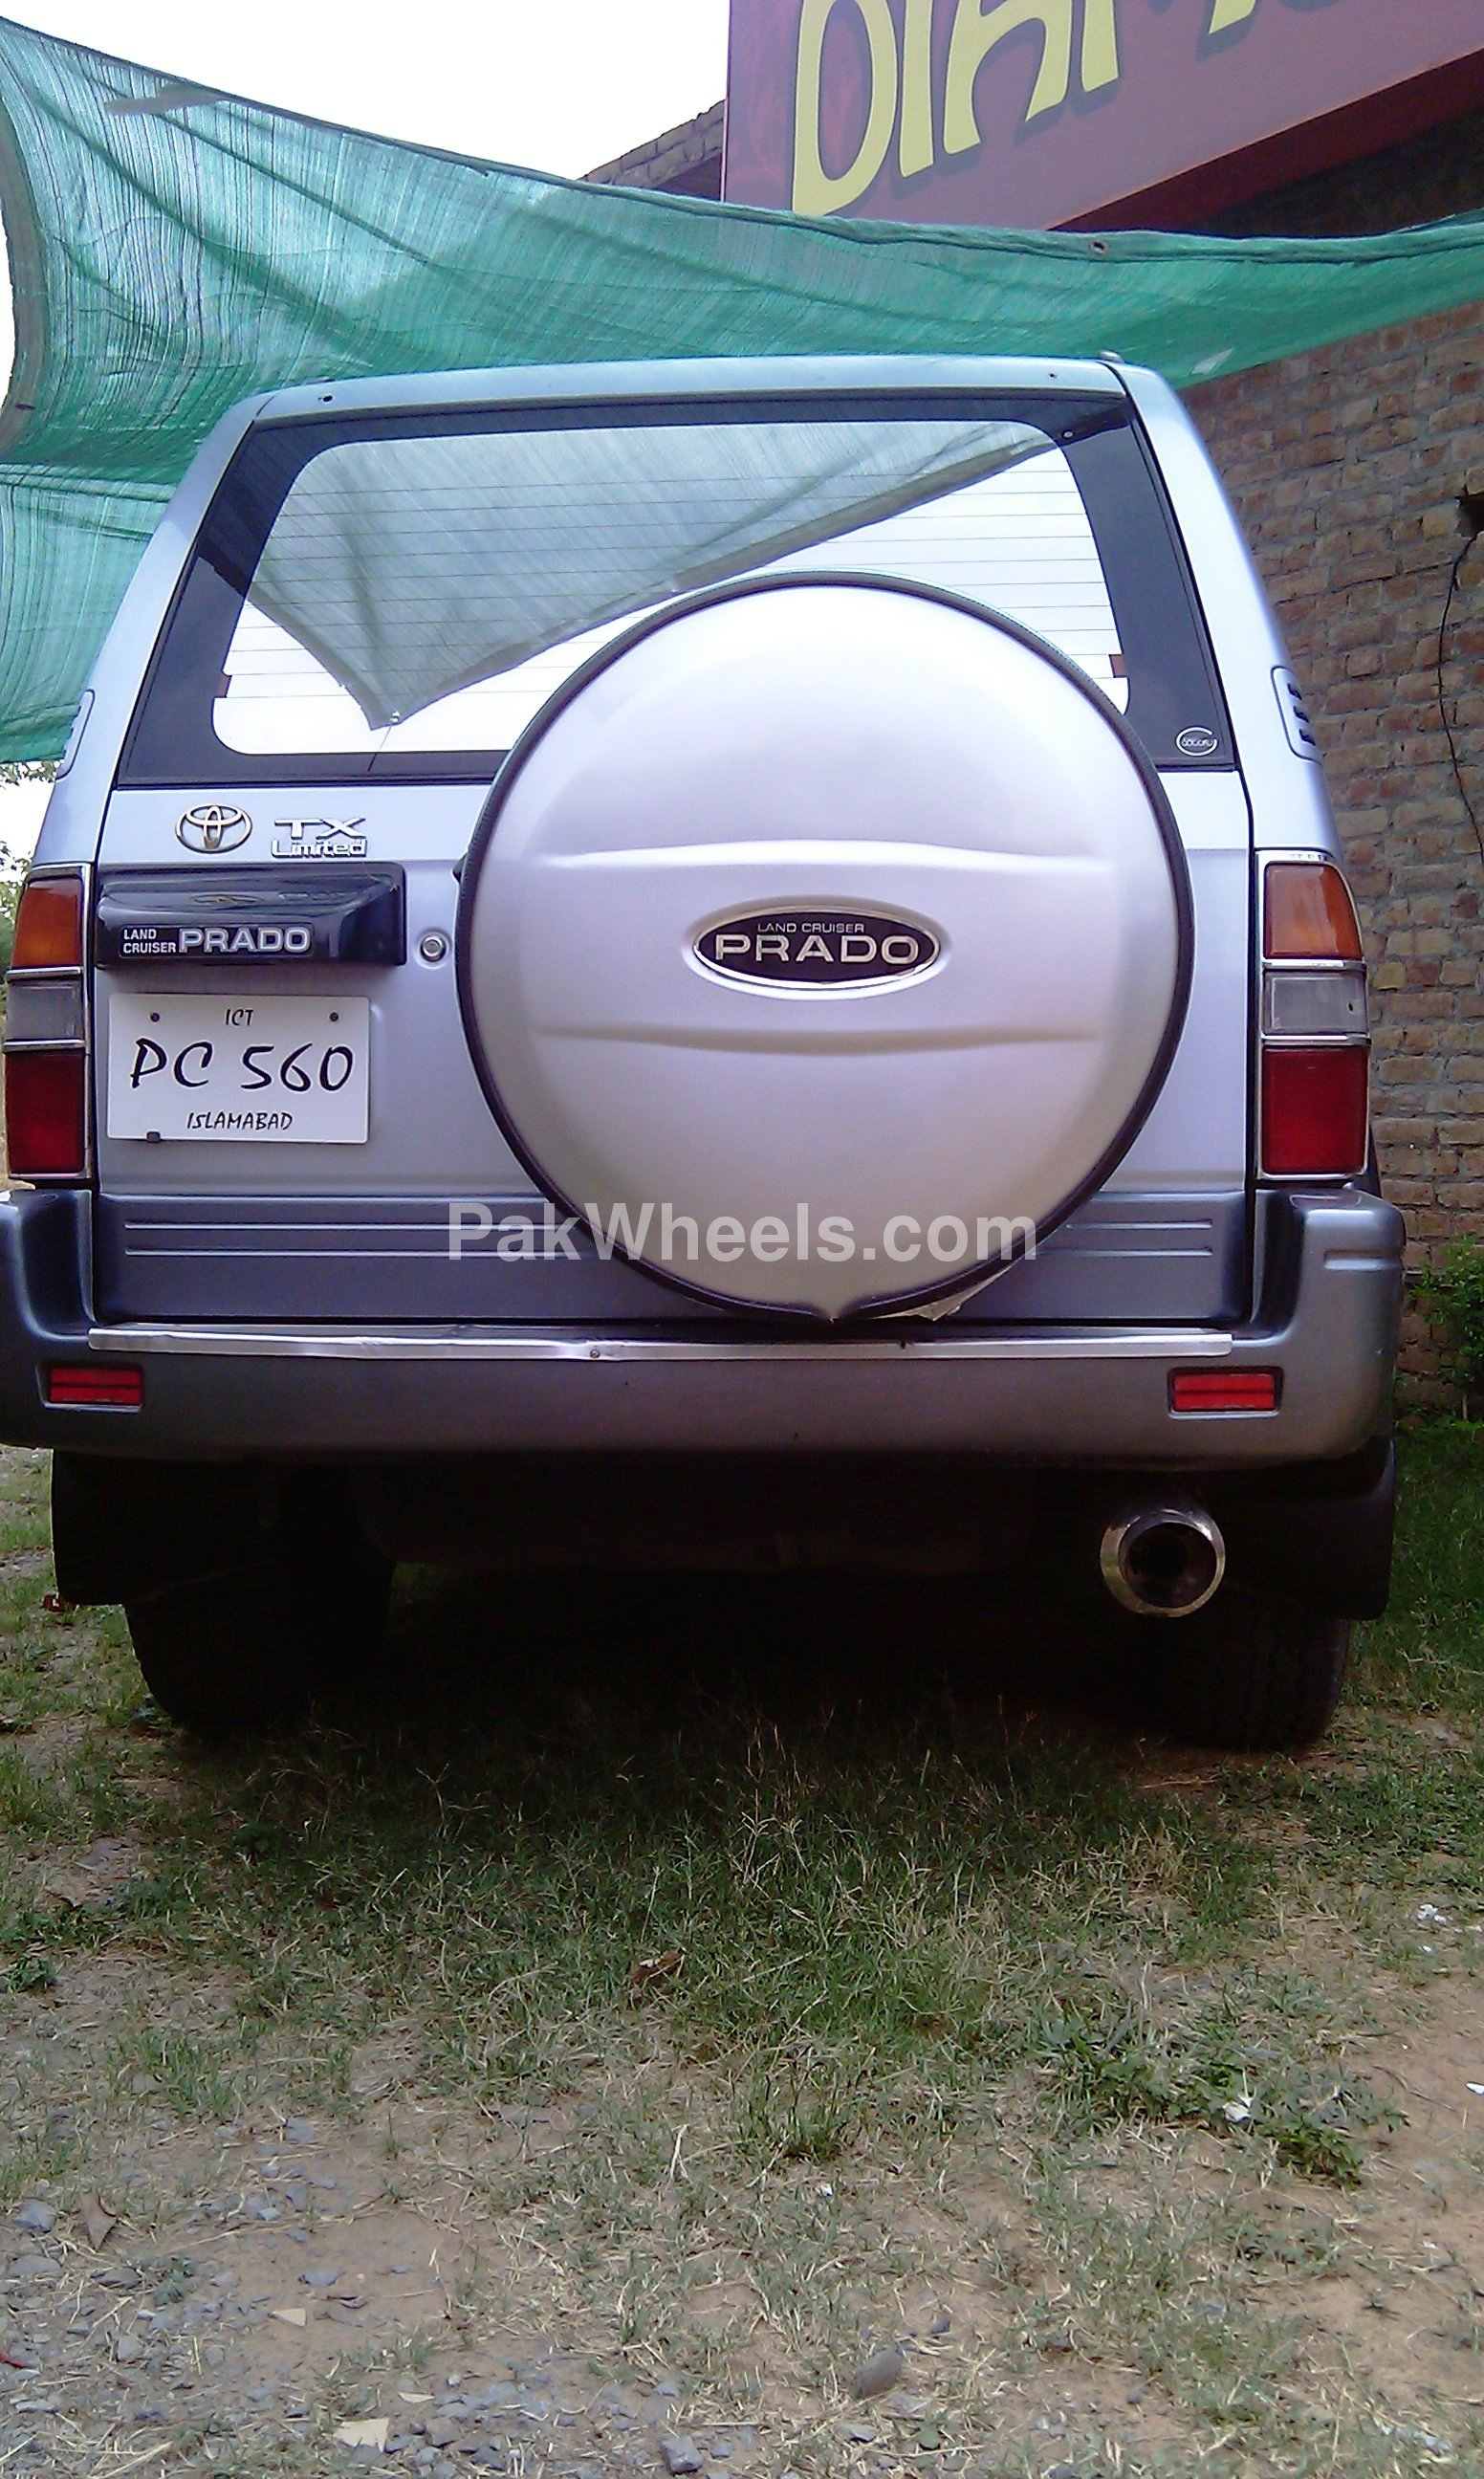 Used Toyota Land Cruiser Prado 3.0 N-turbo 1996 Car for sale in Islamabad - 242299 - 535263